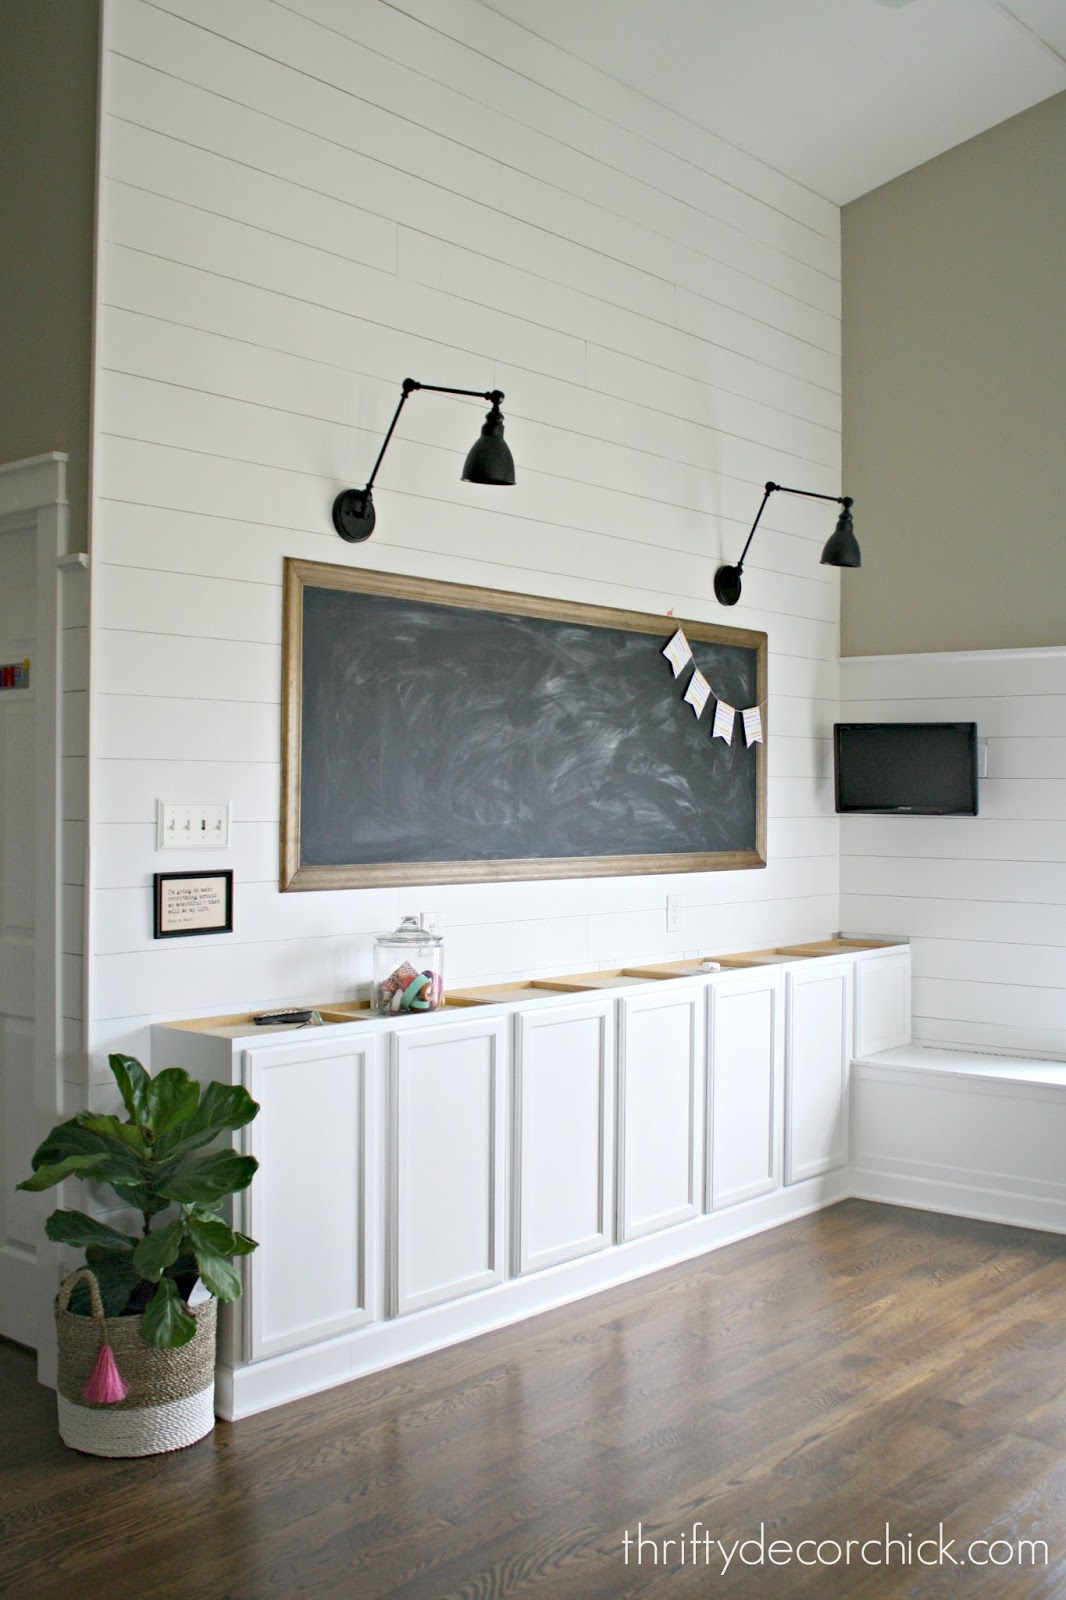 How To Make A Giant Diy Chalkboard From Thrifty Decor Chick